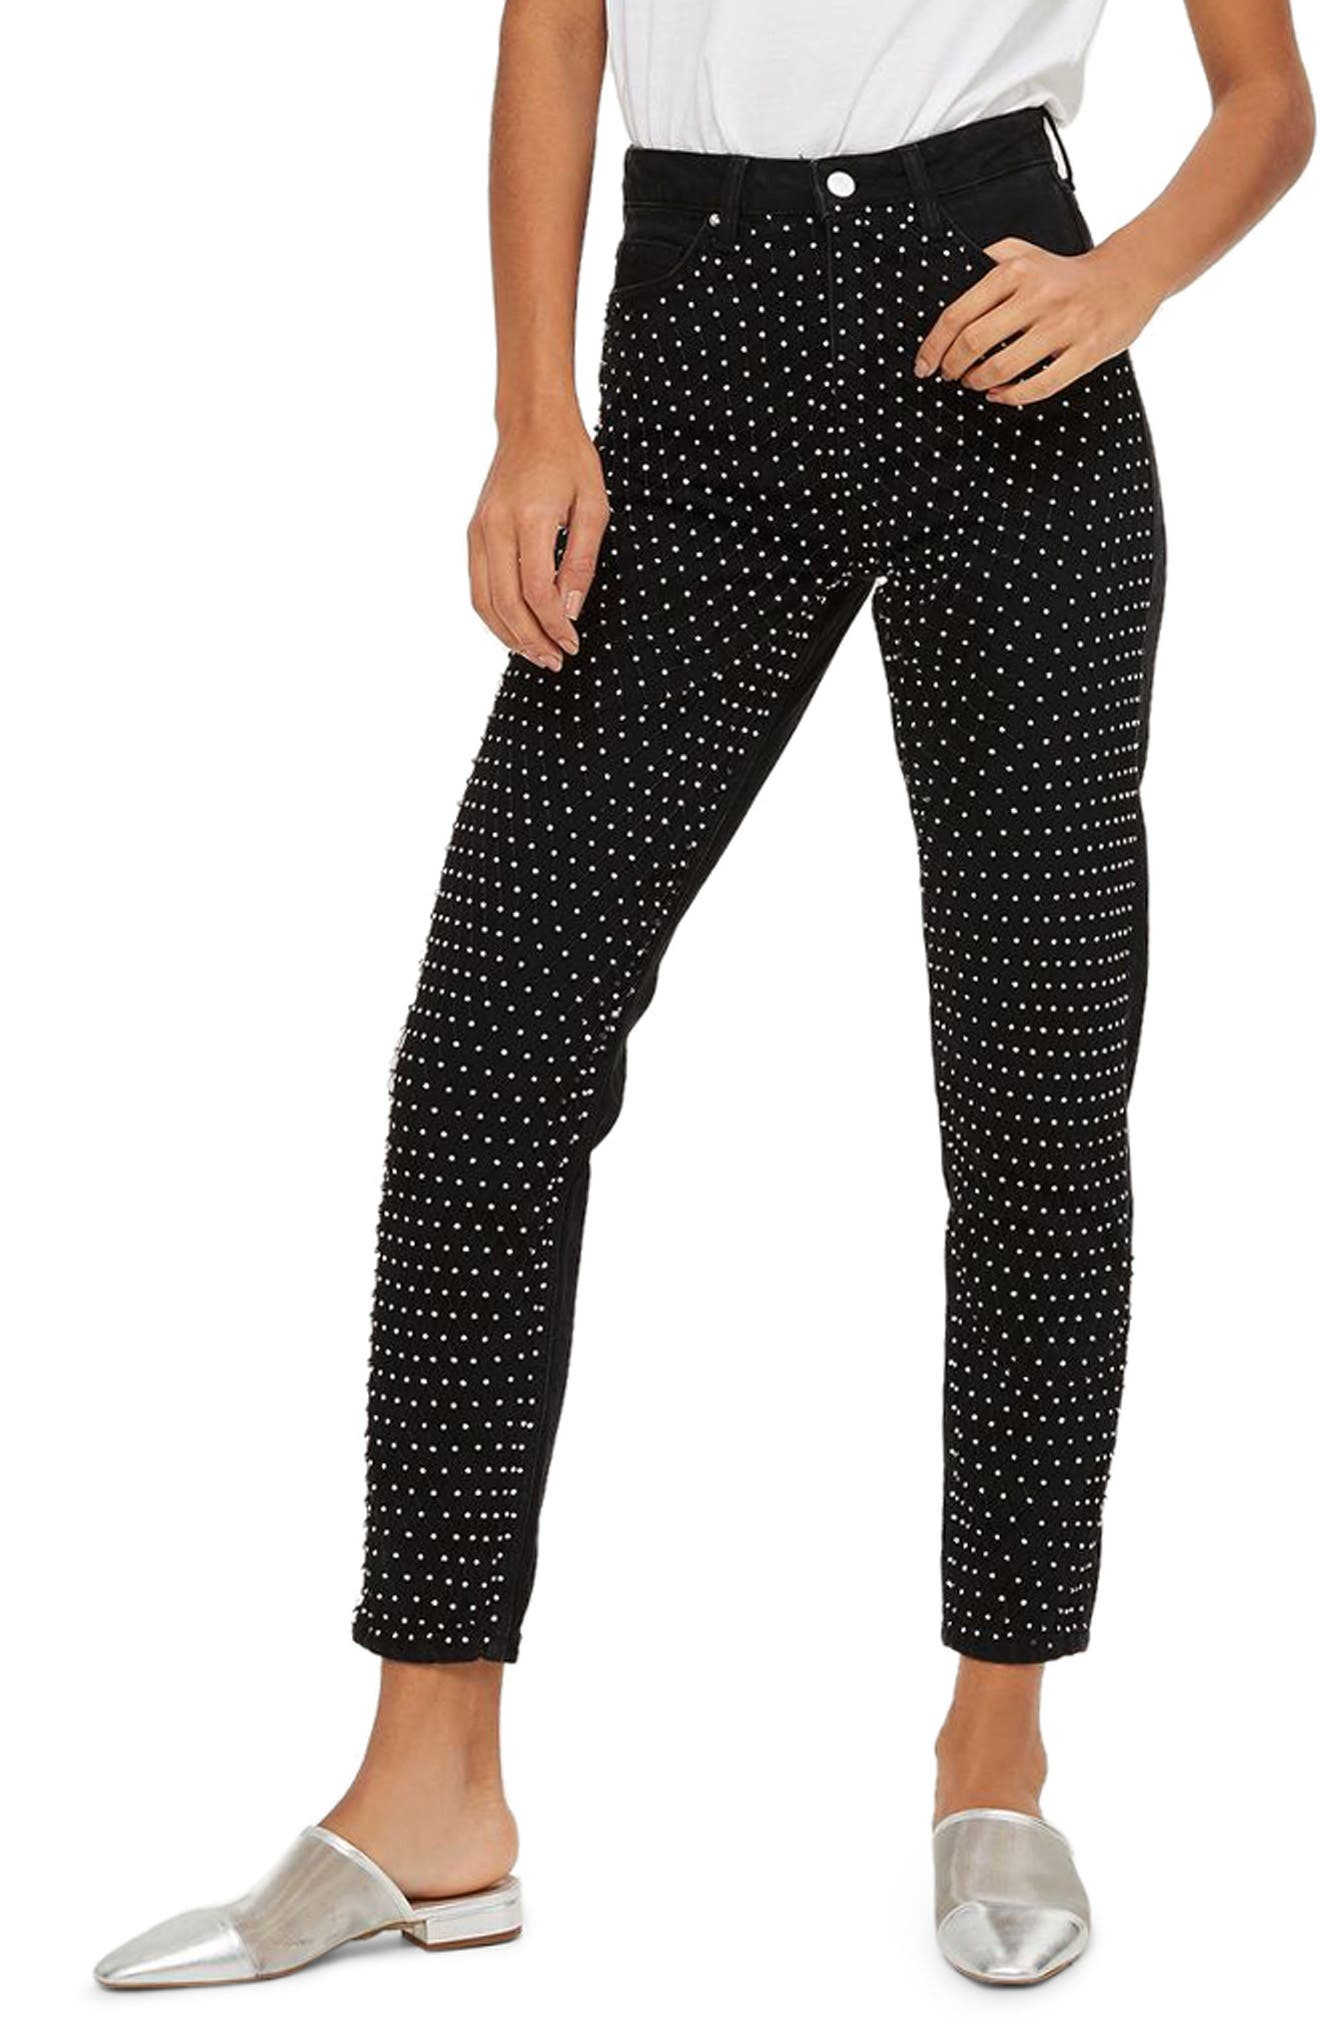 Limited Edition Diamante Fishnet Mom Jeans,                             Main thumbnail 1, color,                             Black